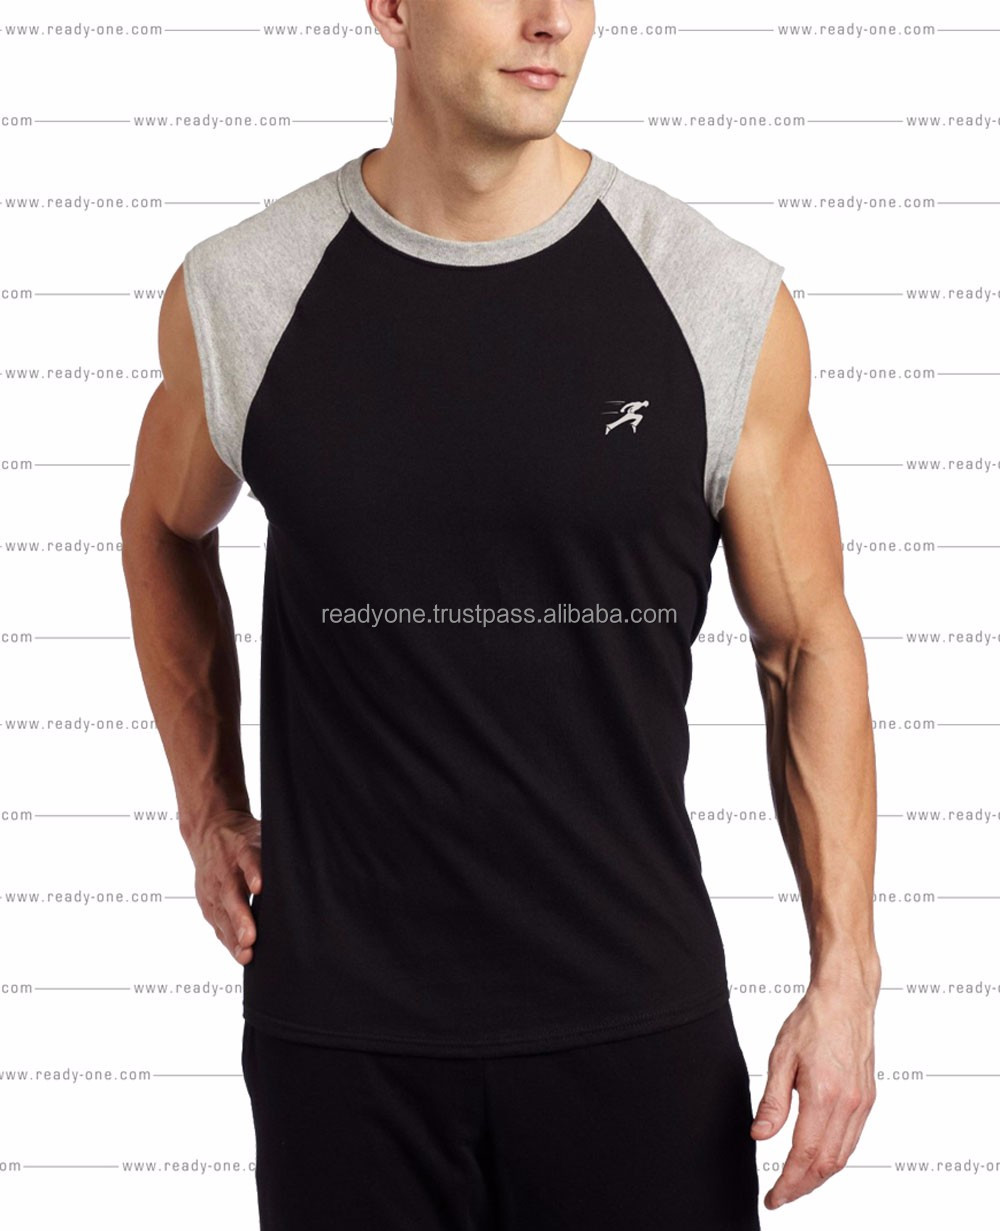 Custom Tank Top Men's Vest Customized Printing Service Bulk Wholesale Clothing China Manufacturer